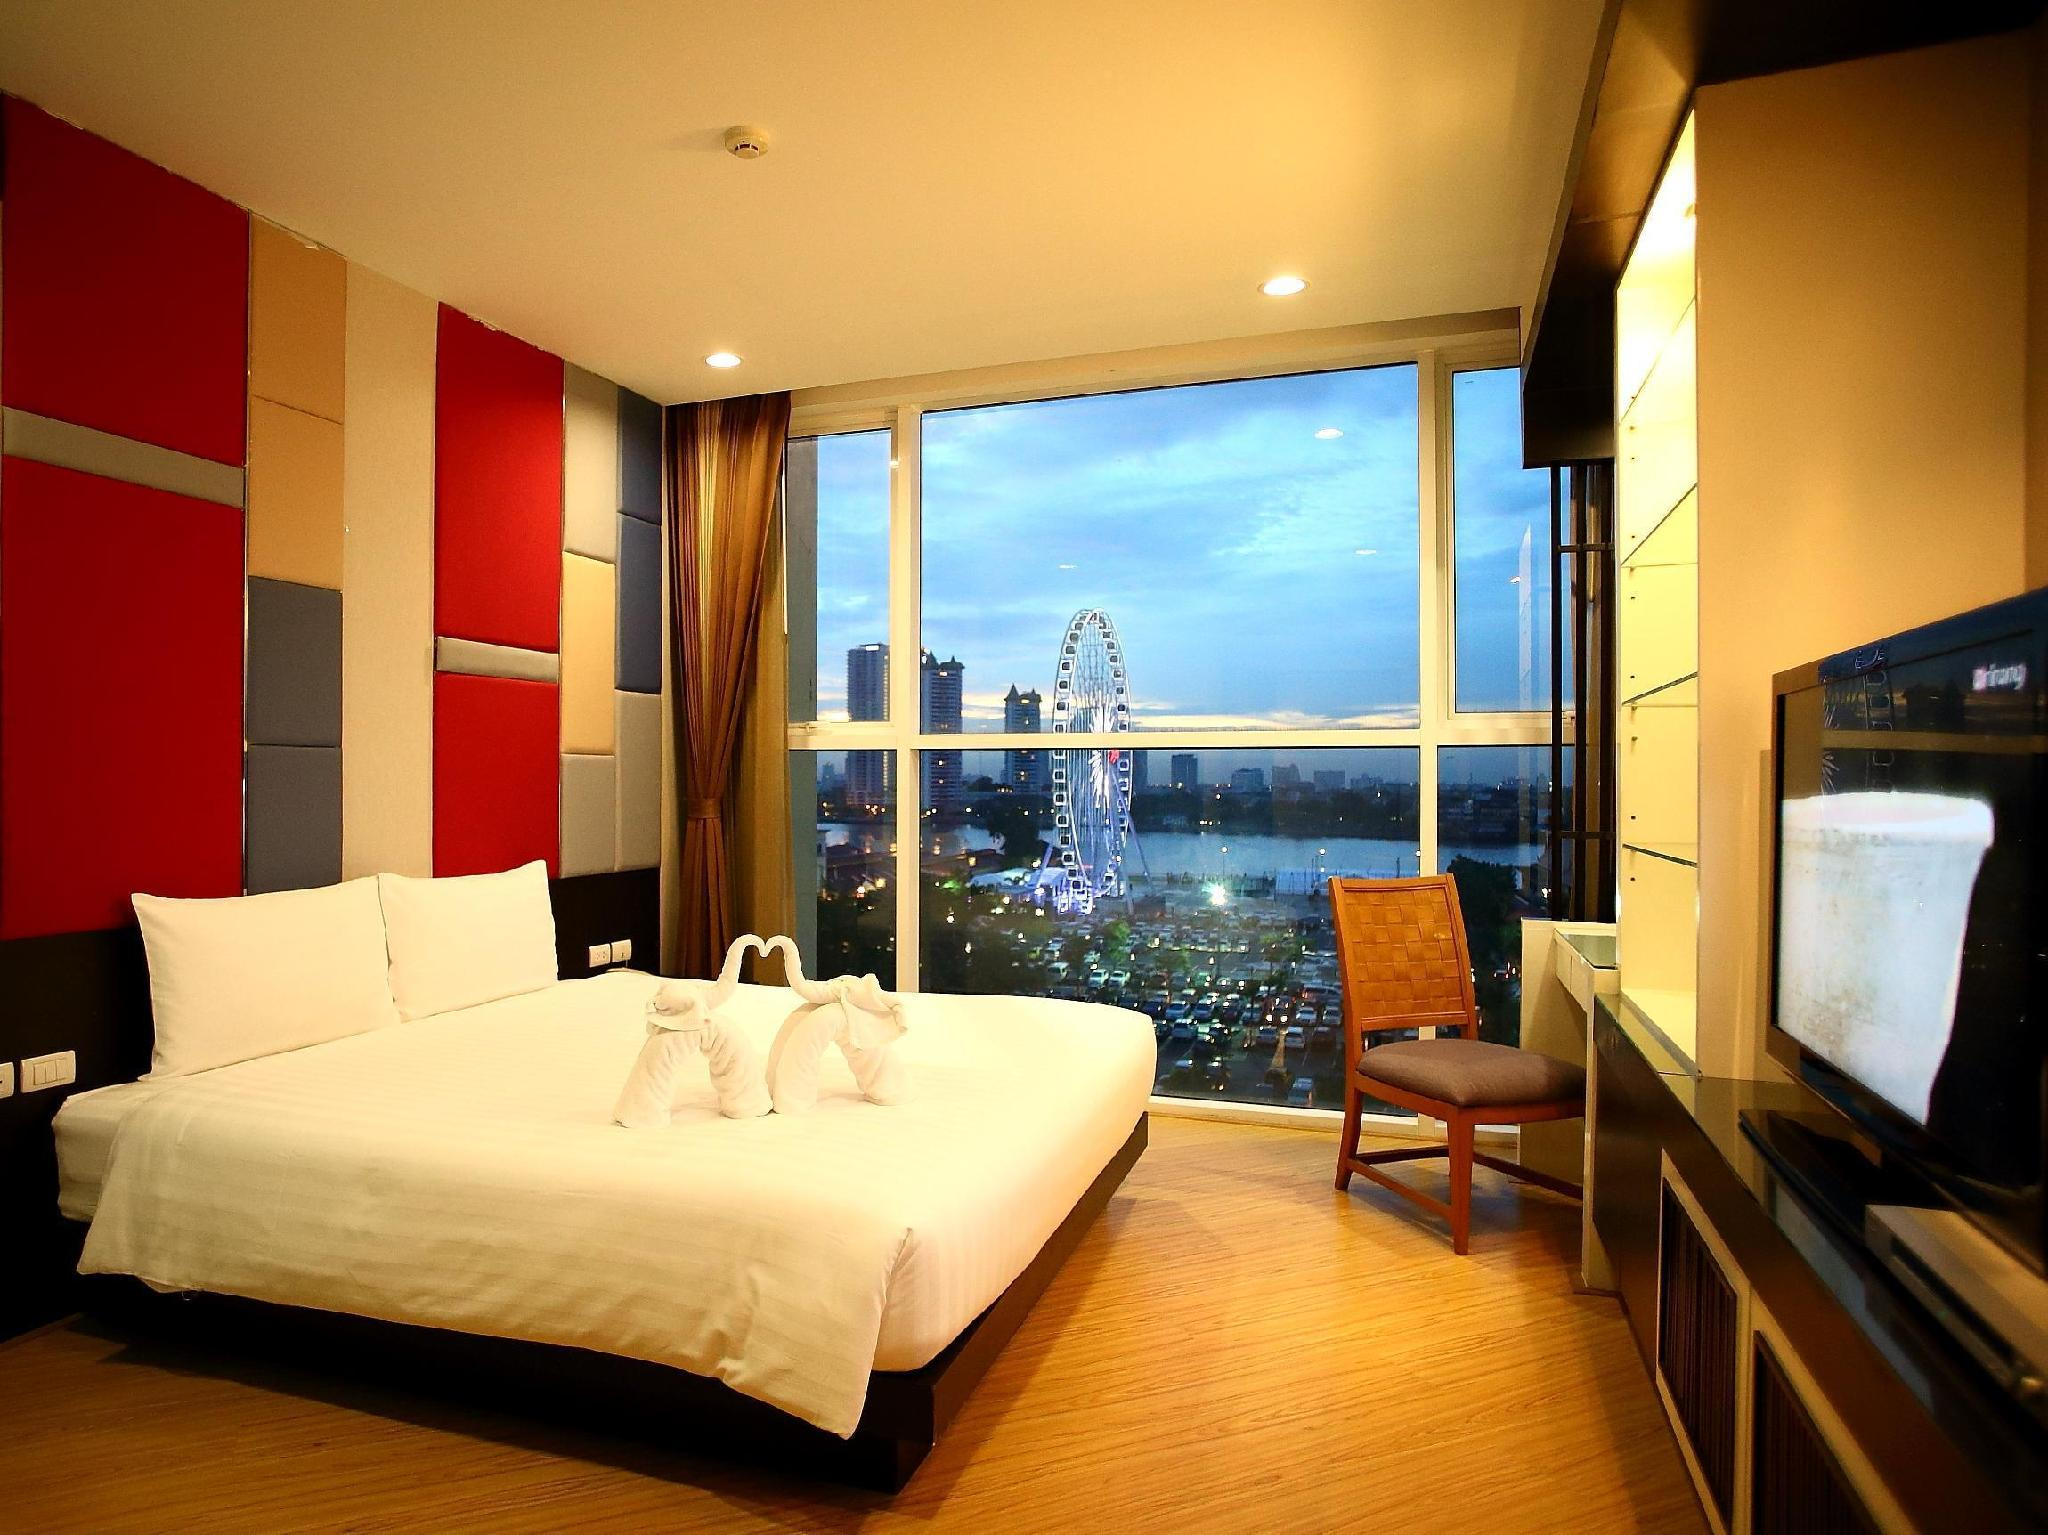 The Sunreno Serviced Apartment - Hotell och Boende i Thailand i Asien